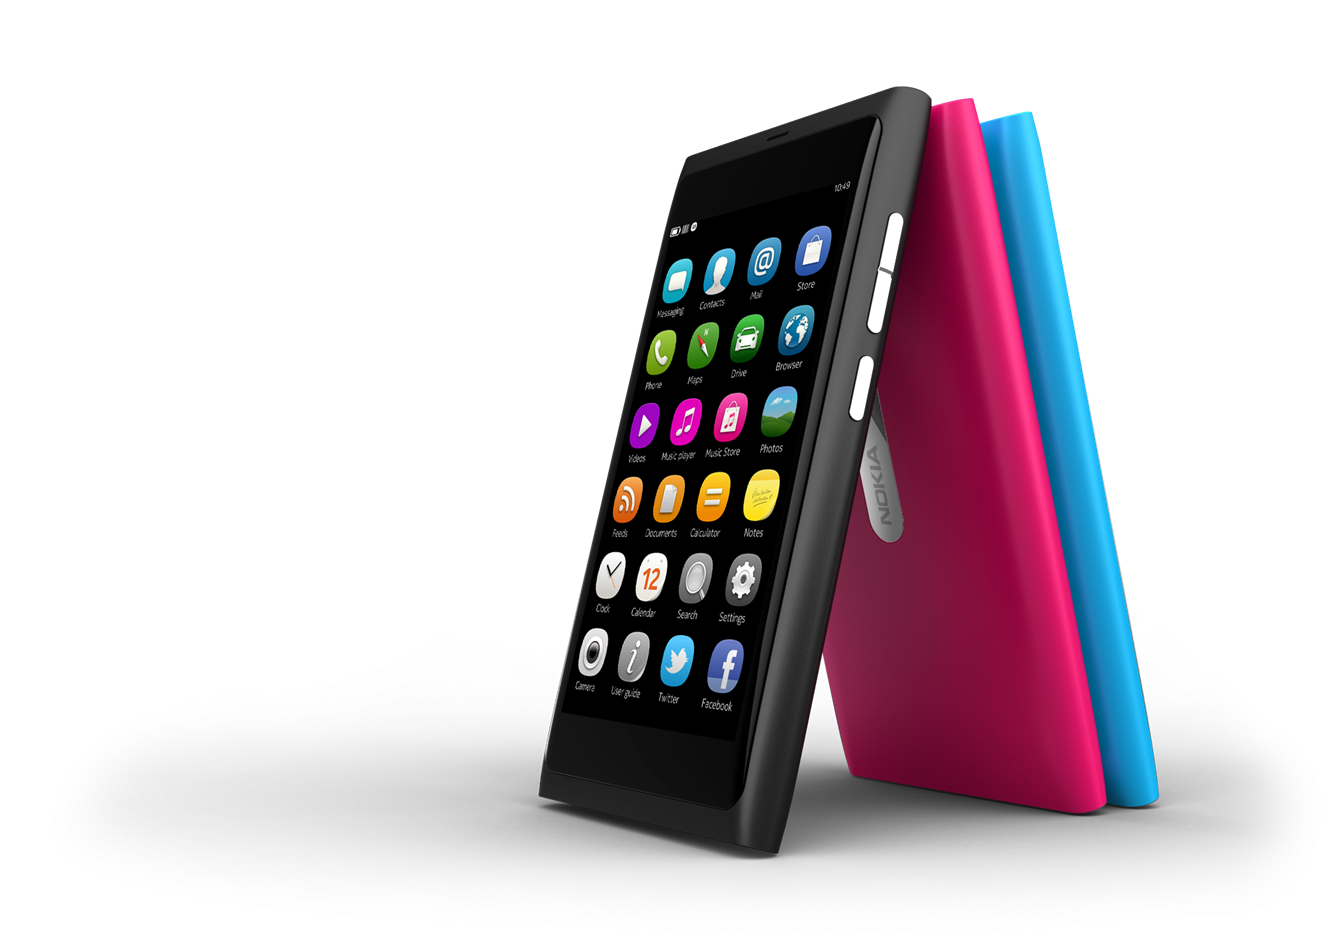 Mijanur Rahman: Nokia N9 Price in India & Full Phone Features ...